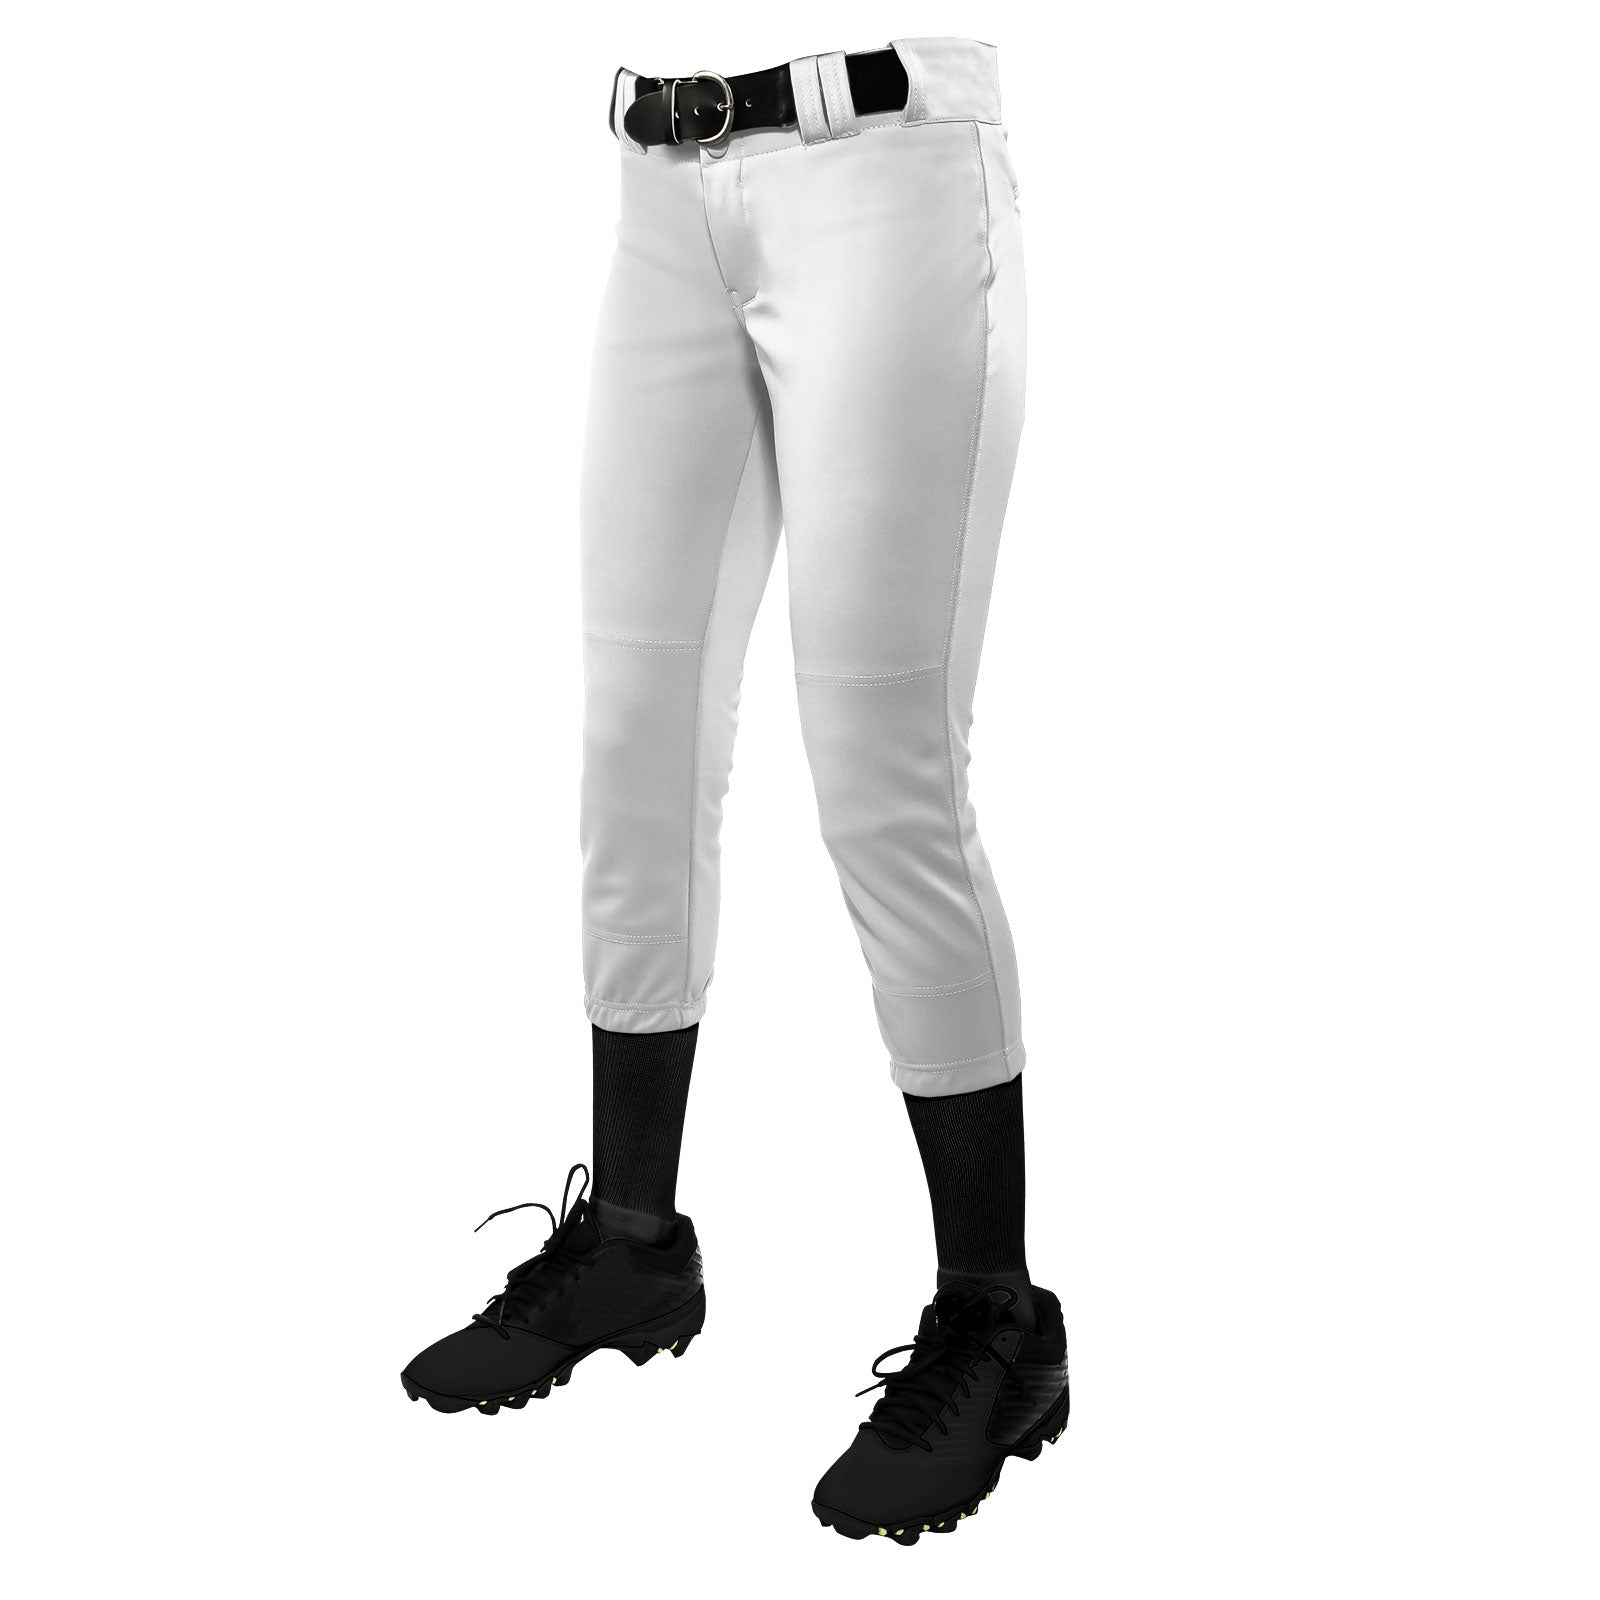 Tournament Women's/Girls Traditional Low-Rise Pants 6-Colors Available - AtlanticCoastSports